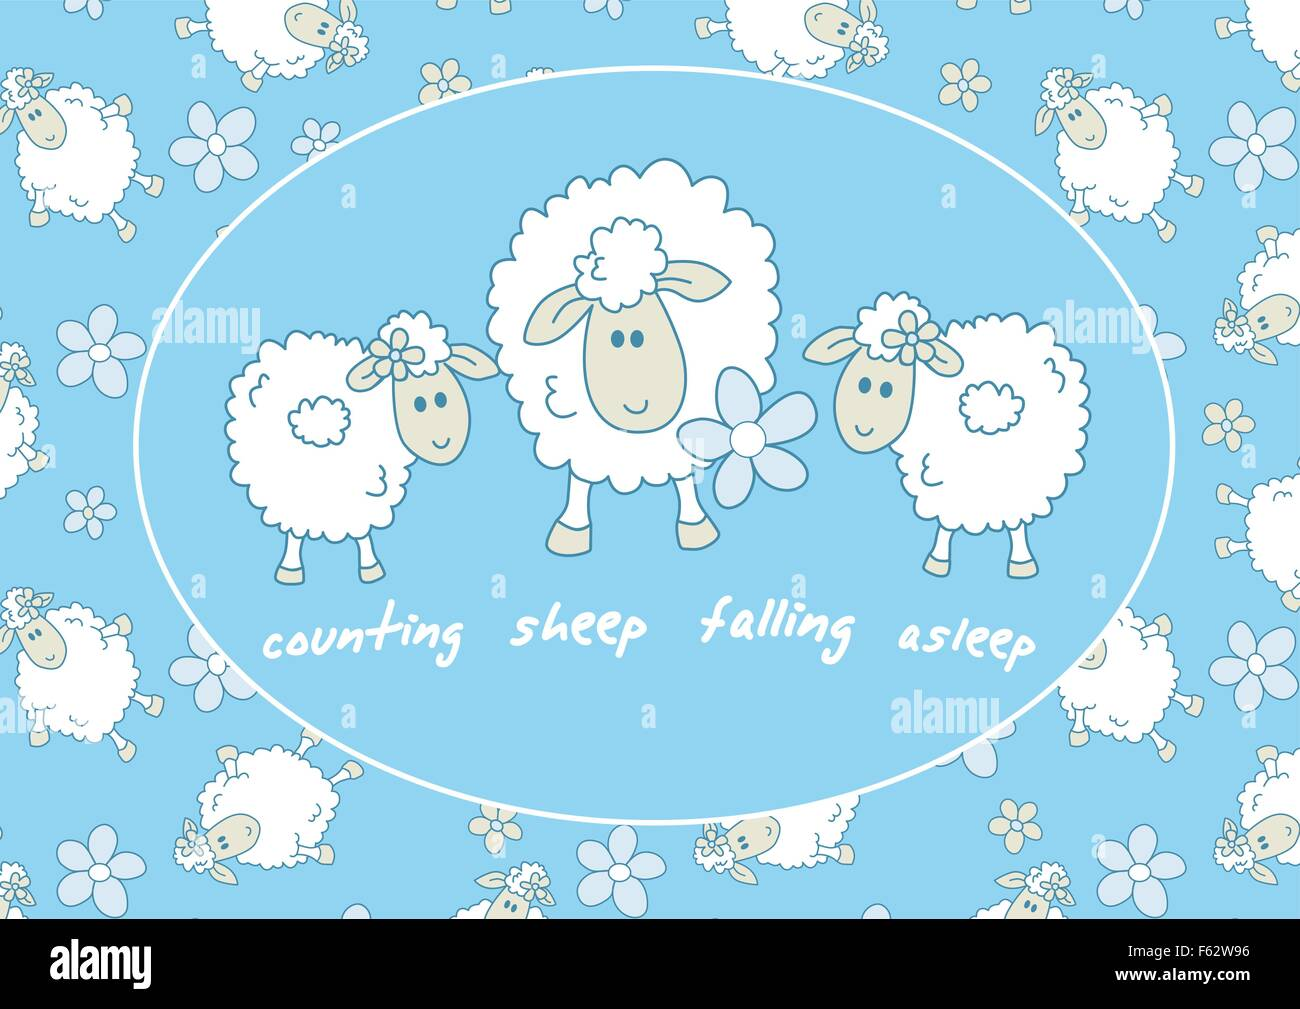 Counting Sheep Stock Vector Images - Alamy